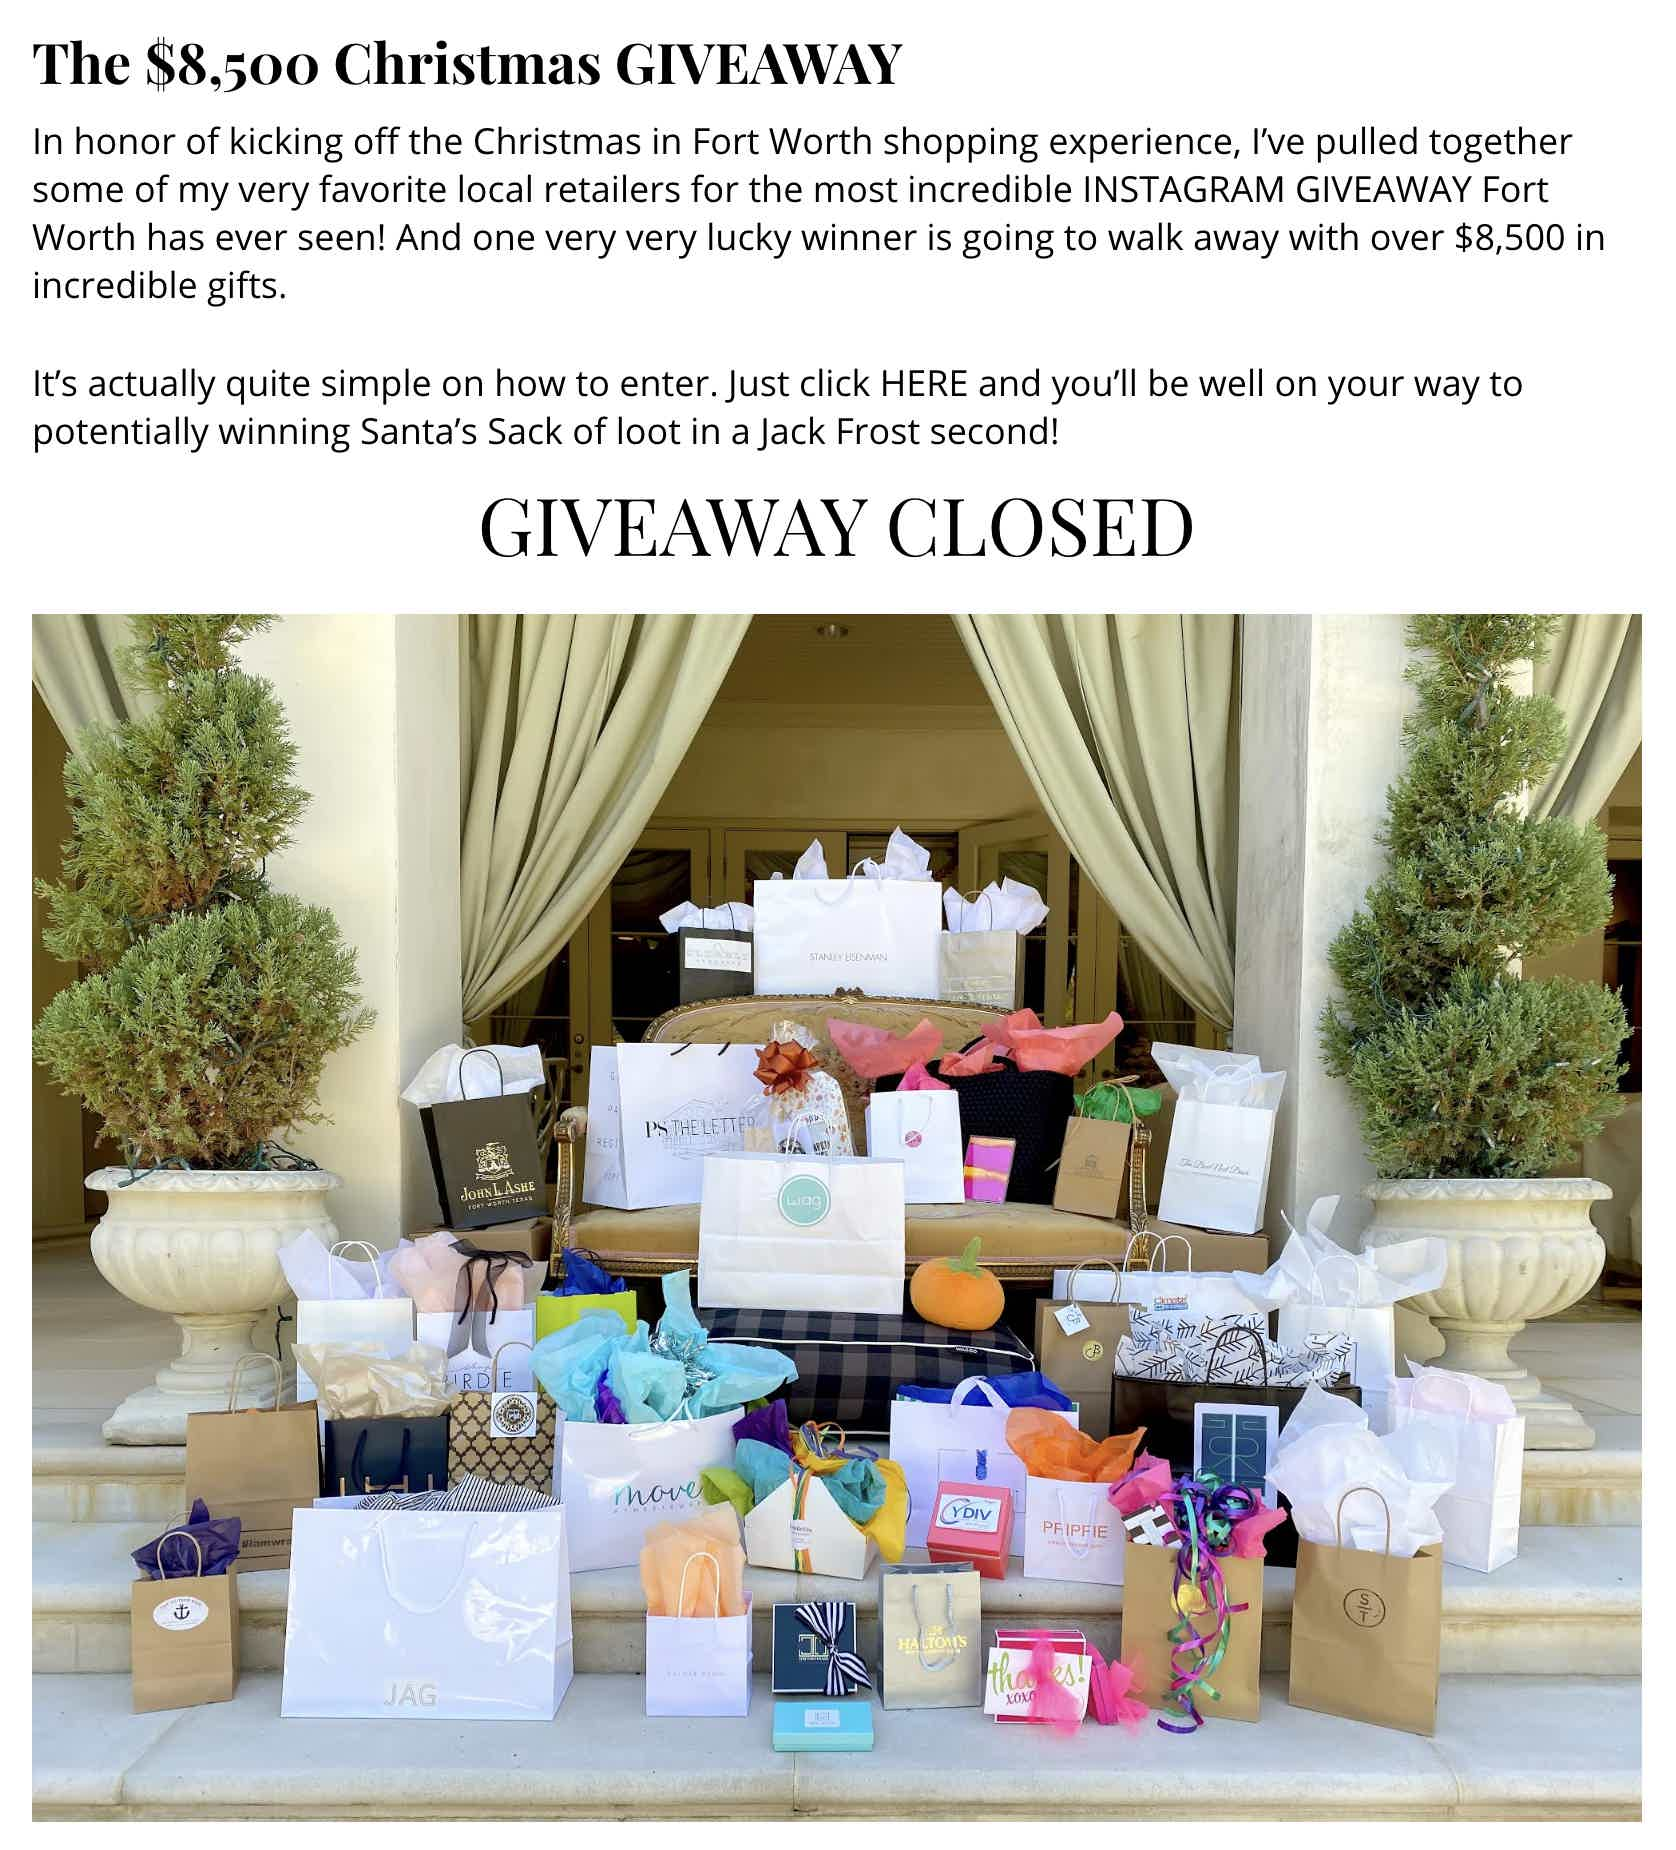 So Fort Worth It Giveaway